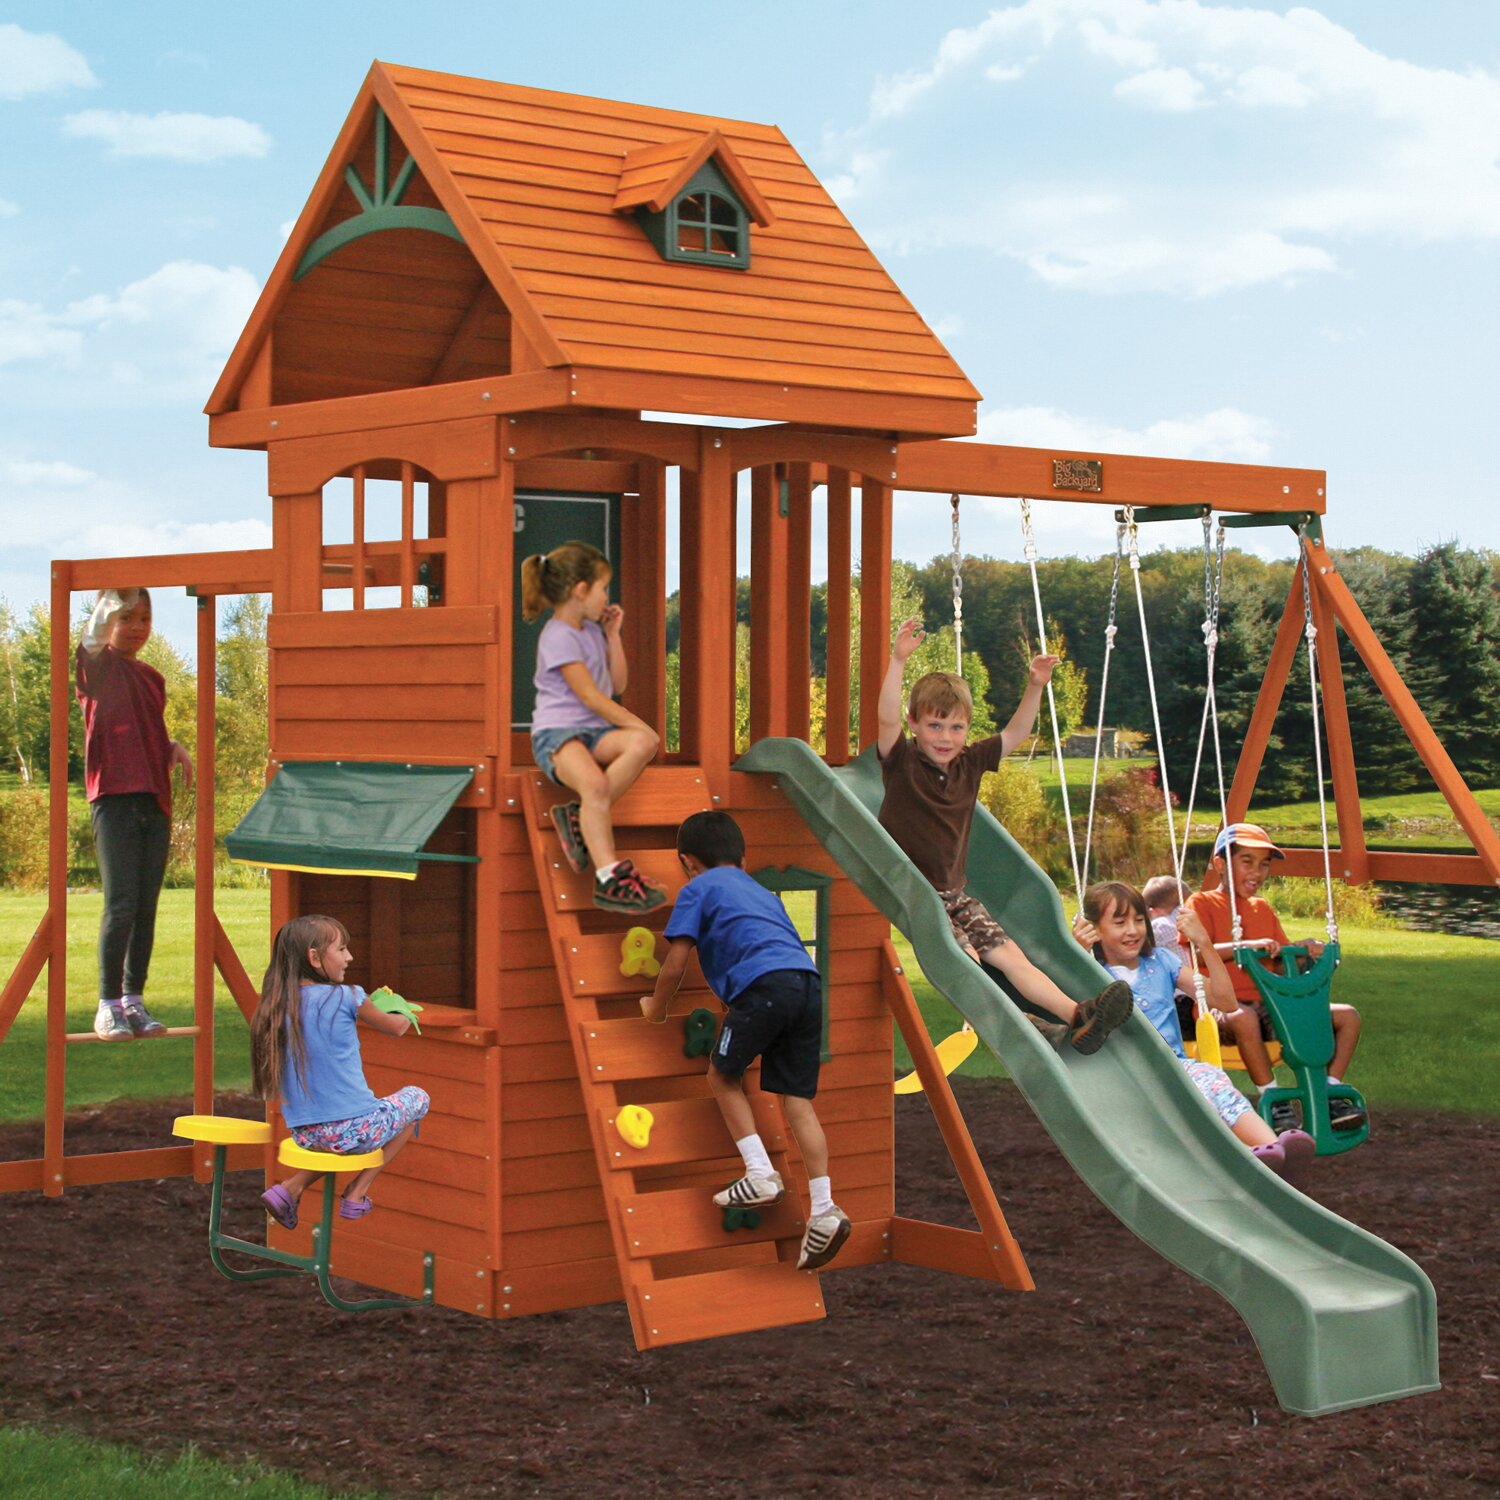 10 Best Backyard Playground Sets Your Kids Will Love